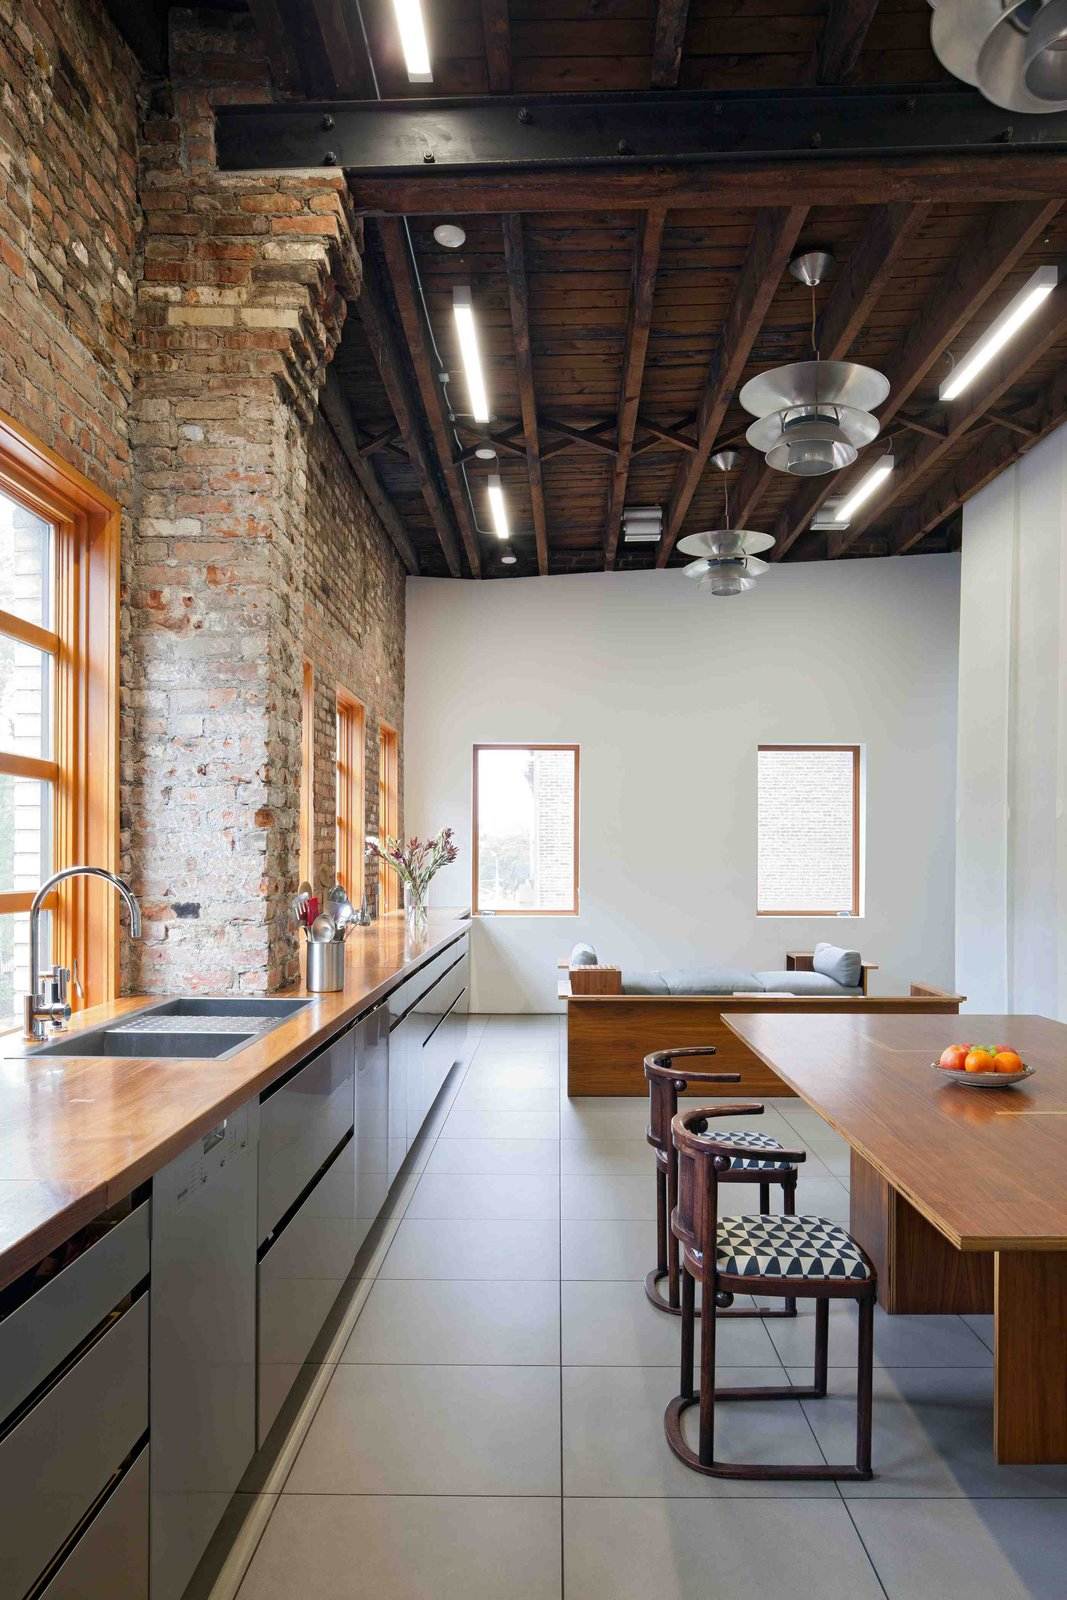 Kitchen, Wood Counter, and Pendant Lighting What the original building lacked in period detailing, it made up for with massive interior spaces, natural light, and a hardy palette of wood and raw brick.  Working with these loft signatures, David developed the hall's liveable side, adding under-floor heating, and a gigantic kitchen on the upper floor running the width of the building, with a 37-foot-long solid walnut counter on top of stainless steel cabinets. This unites the dining, cooking and social spaces that run the length of the front façade on the upper floor.  Photo 8 of 8 in This Spacious Home in a Former Warehouse is Part Art Gallery